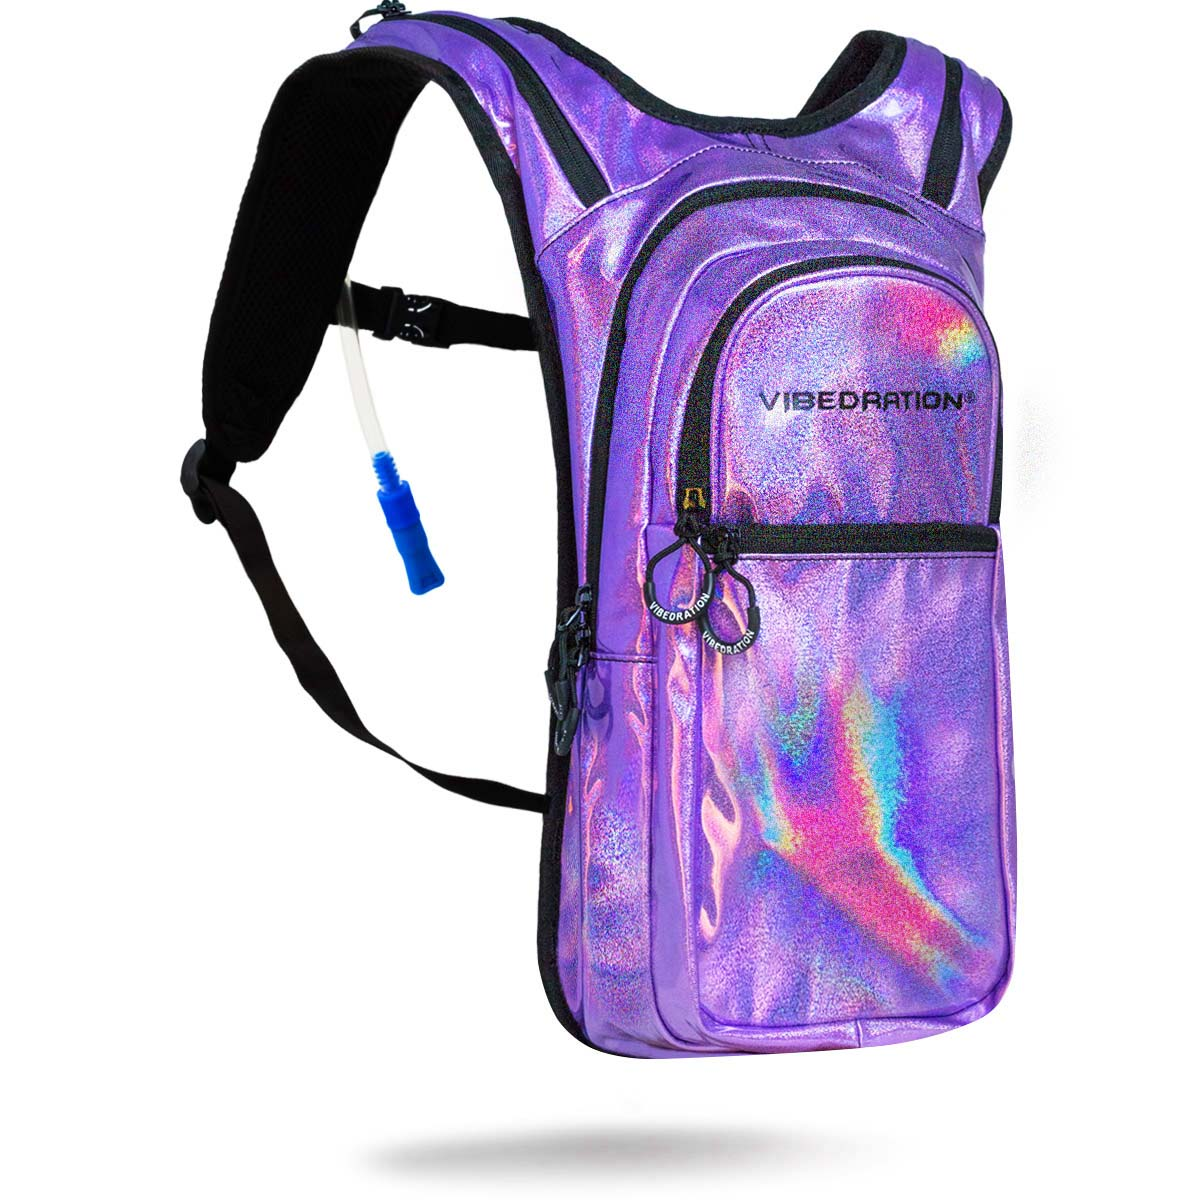 Lavender Holographic Hydration Water Pack with two liter water capacity